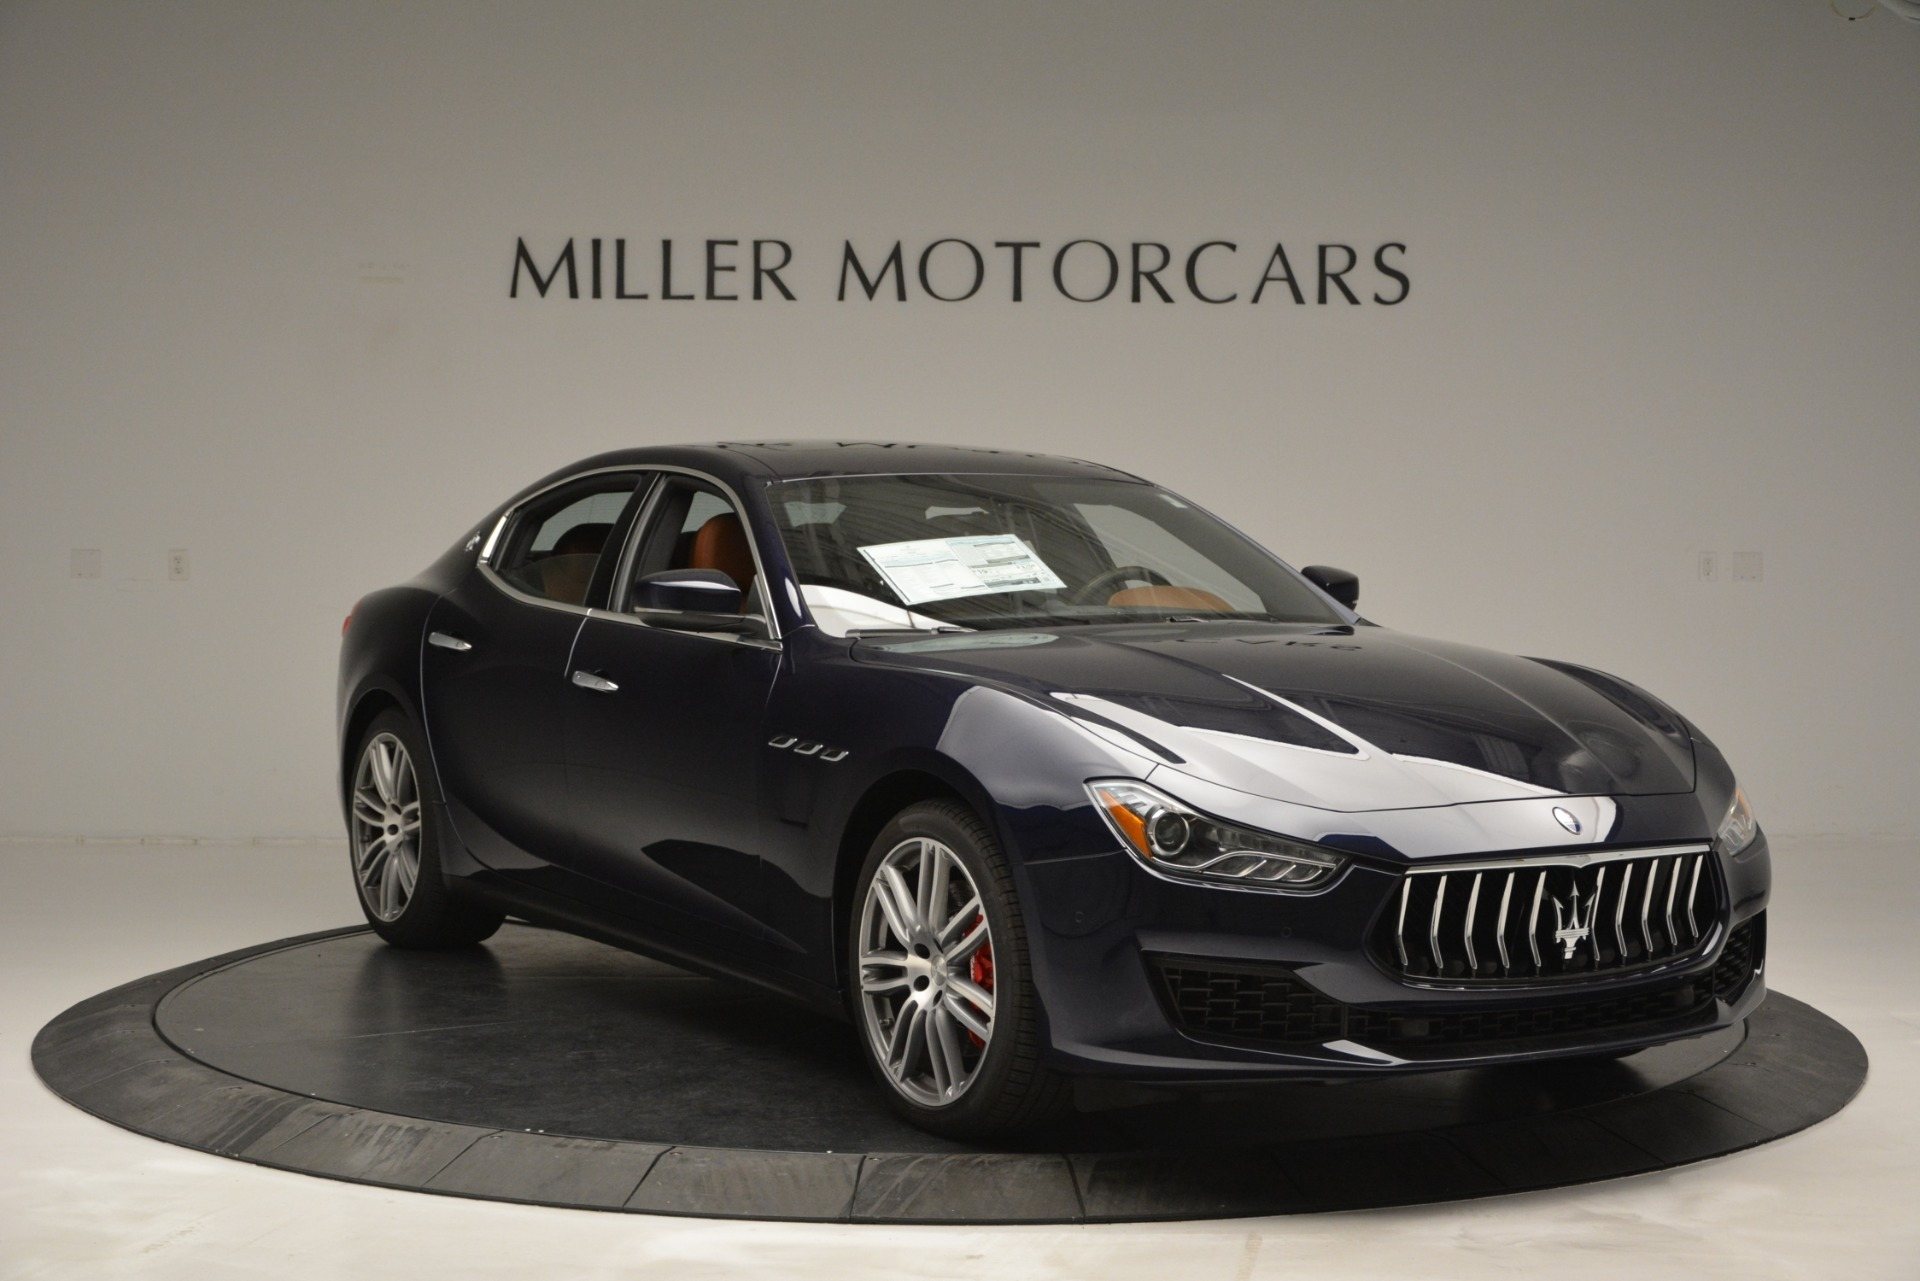 New 2019 Maserati Ghibli S Q4 For Sale In Westport, CT 2737_p11